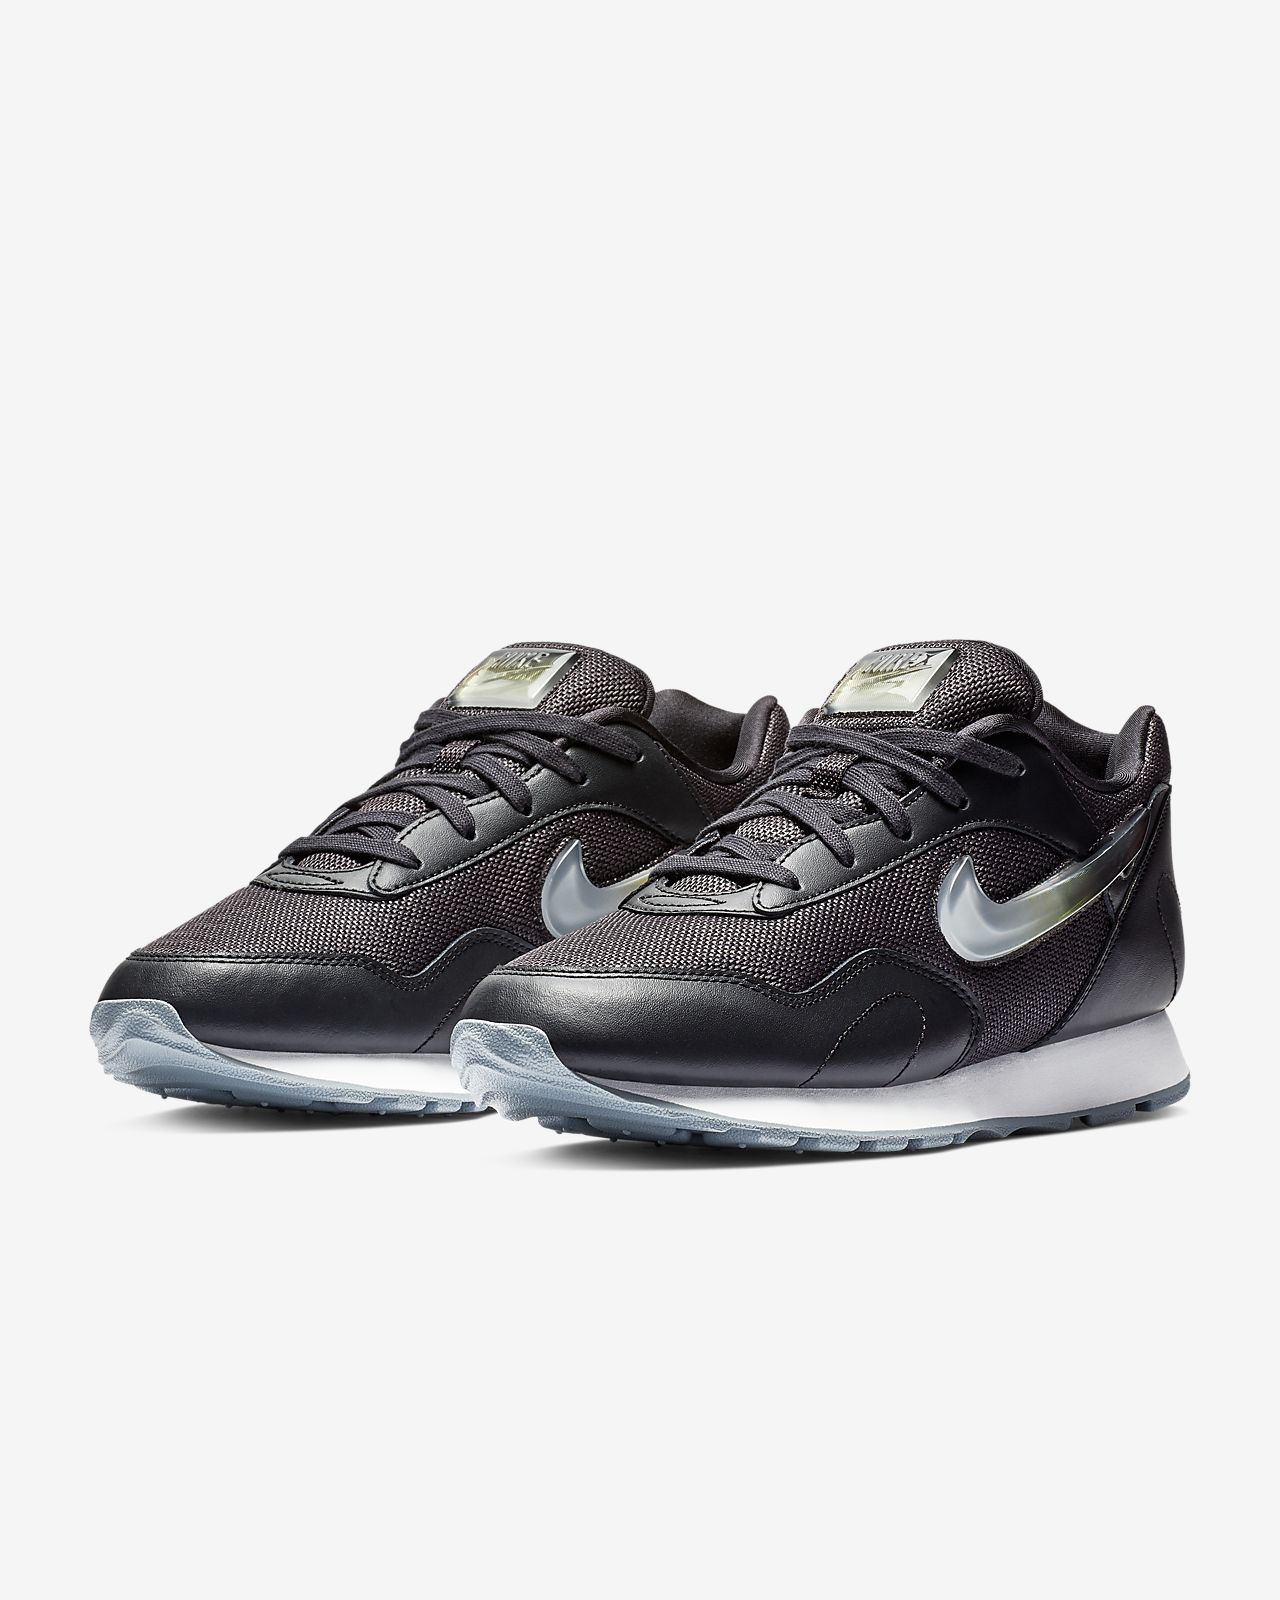 separation shoes 48415 824ee Low Resolution Nike Outburst Premium Women s Shoe Nike Outburst Premium  Women s Shoe